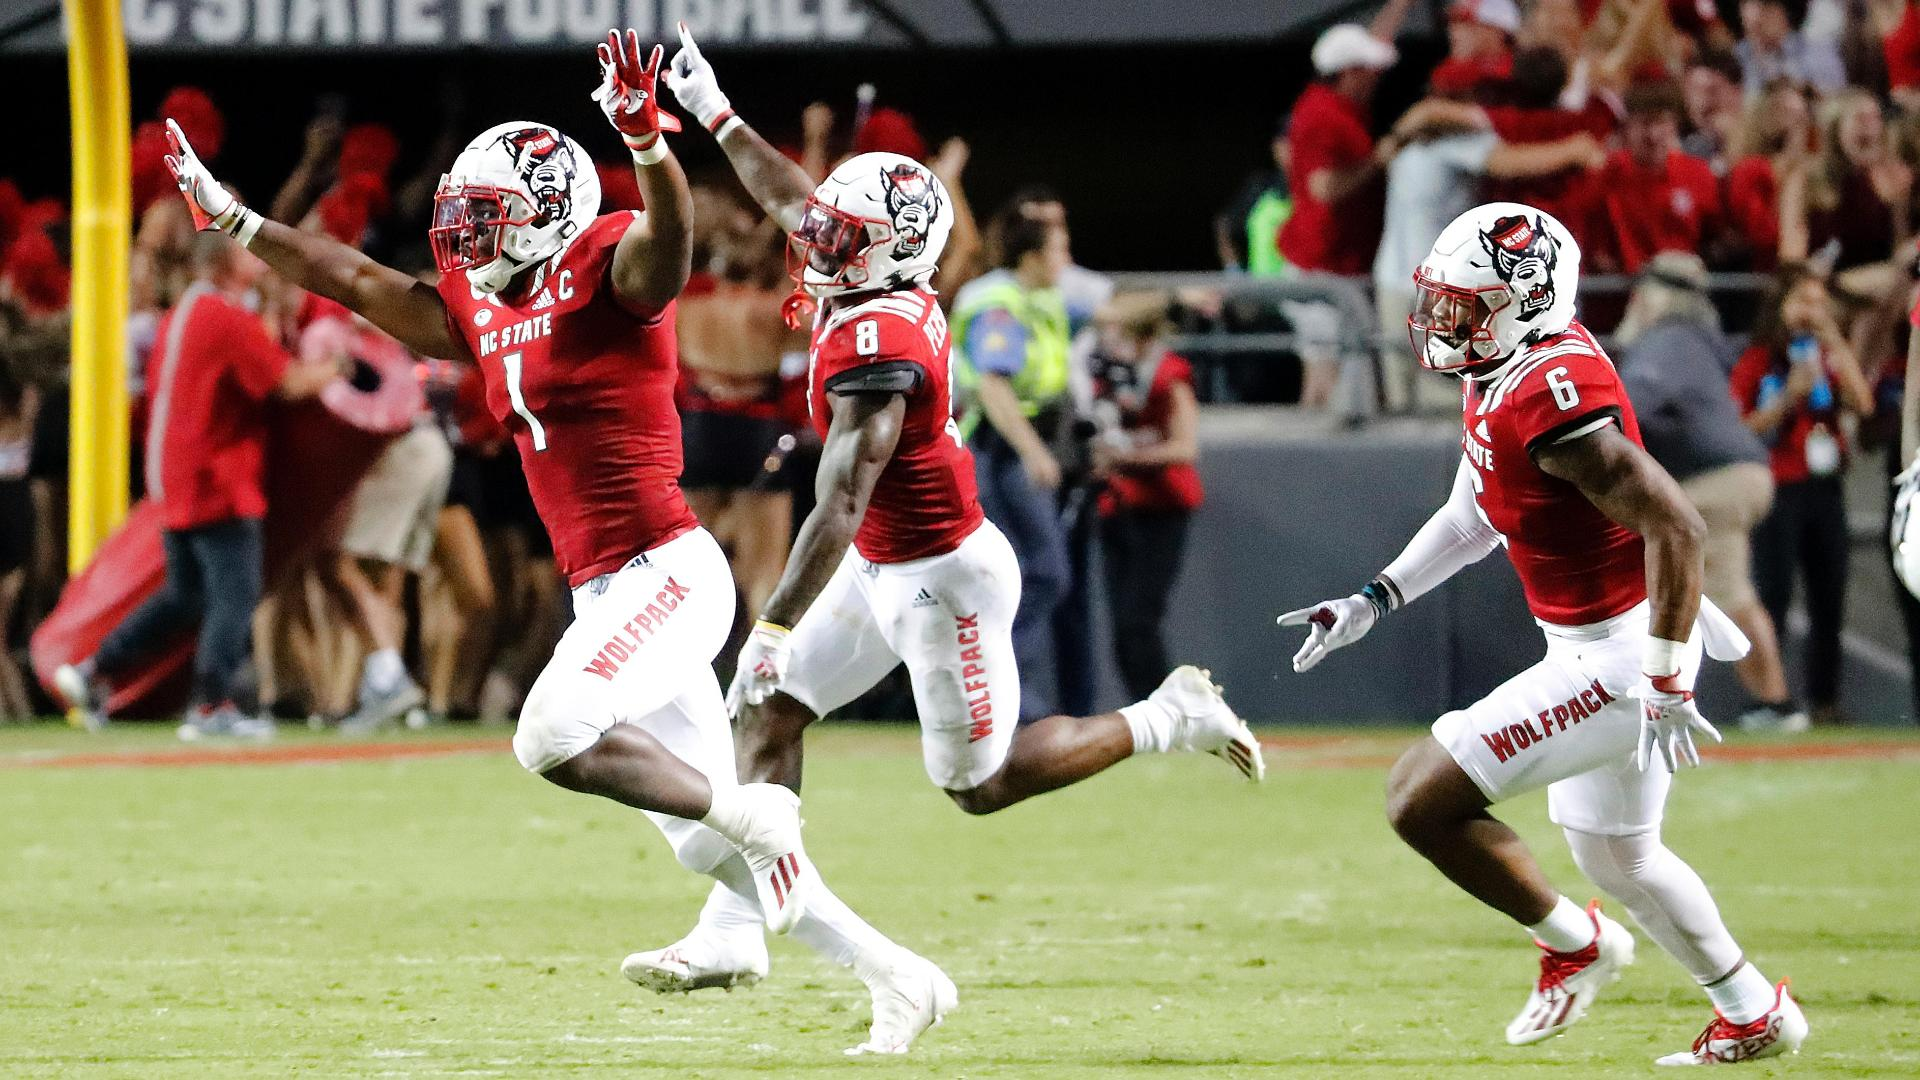 Unranked NC State stuns Clemson in 2OT